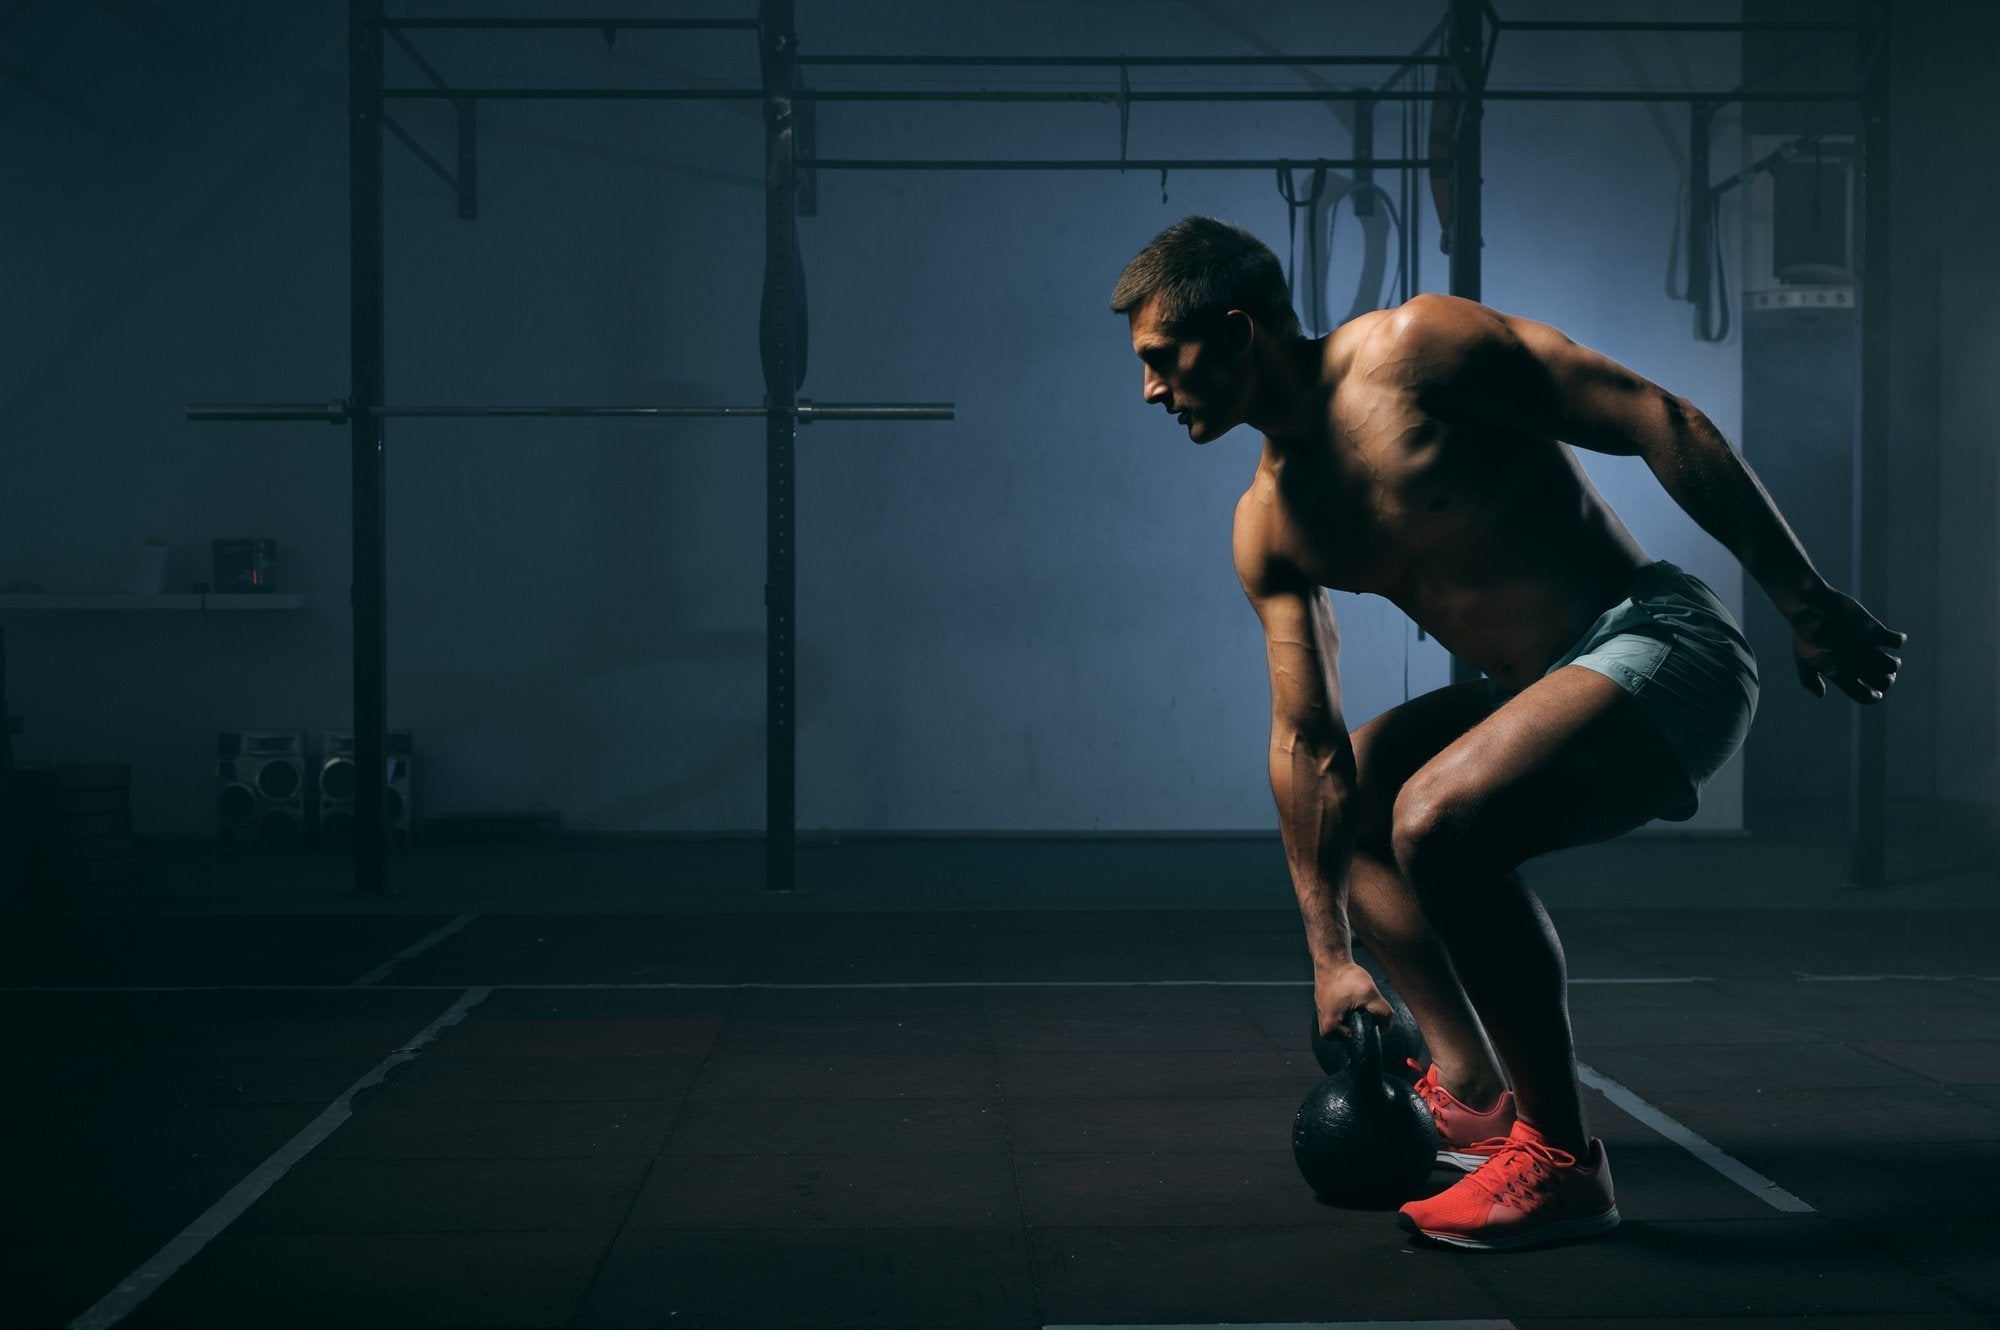 Strength Training 101: When to Increase the Weight You're Lifting